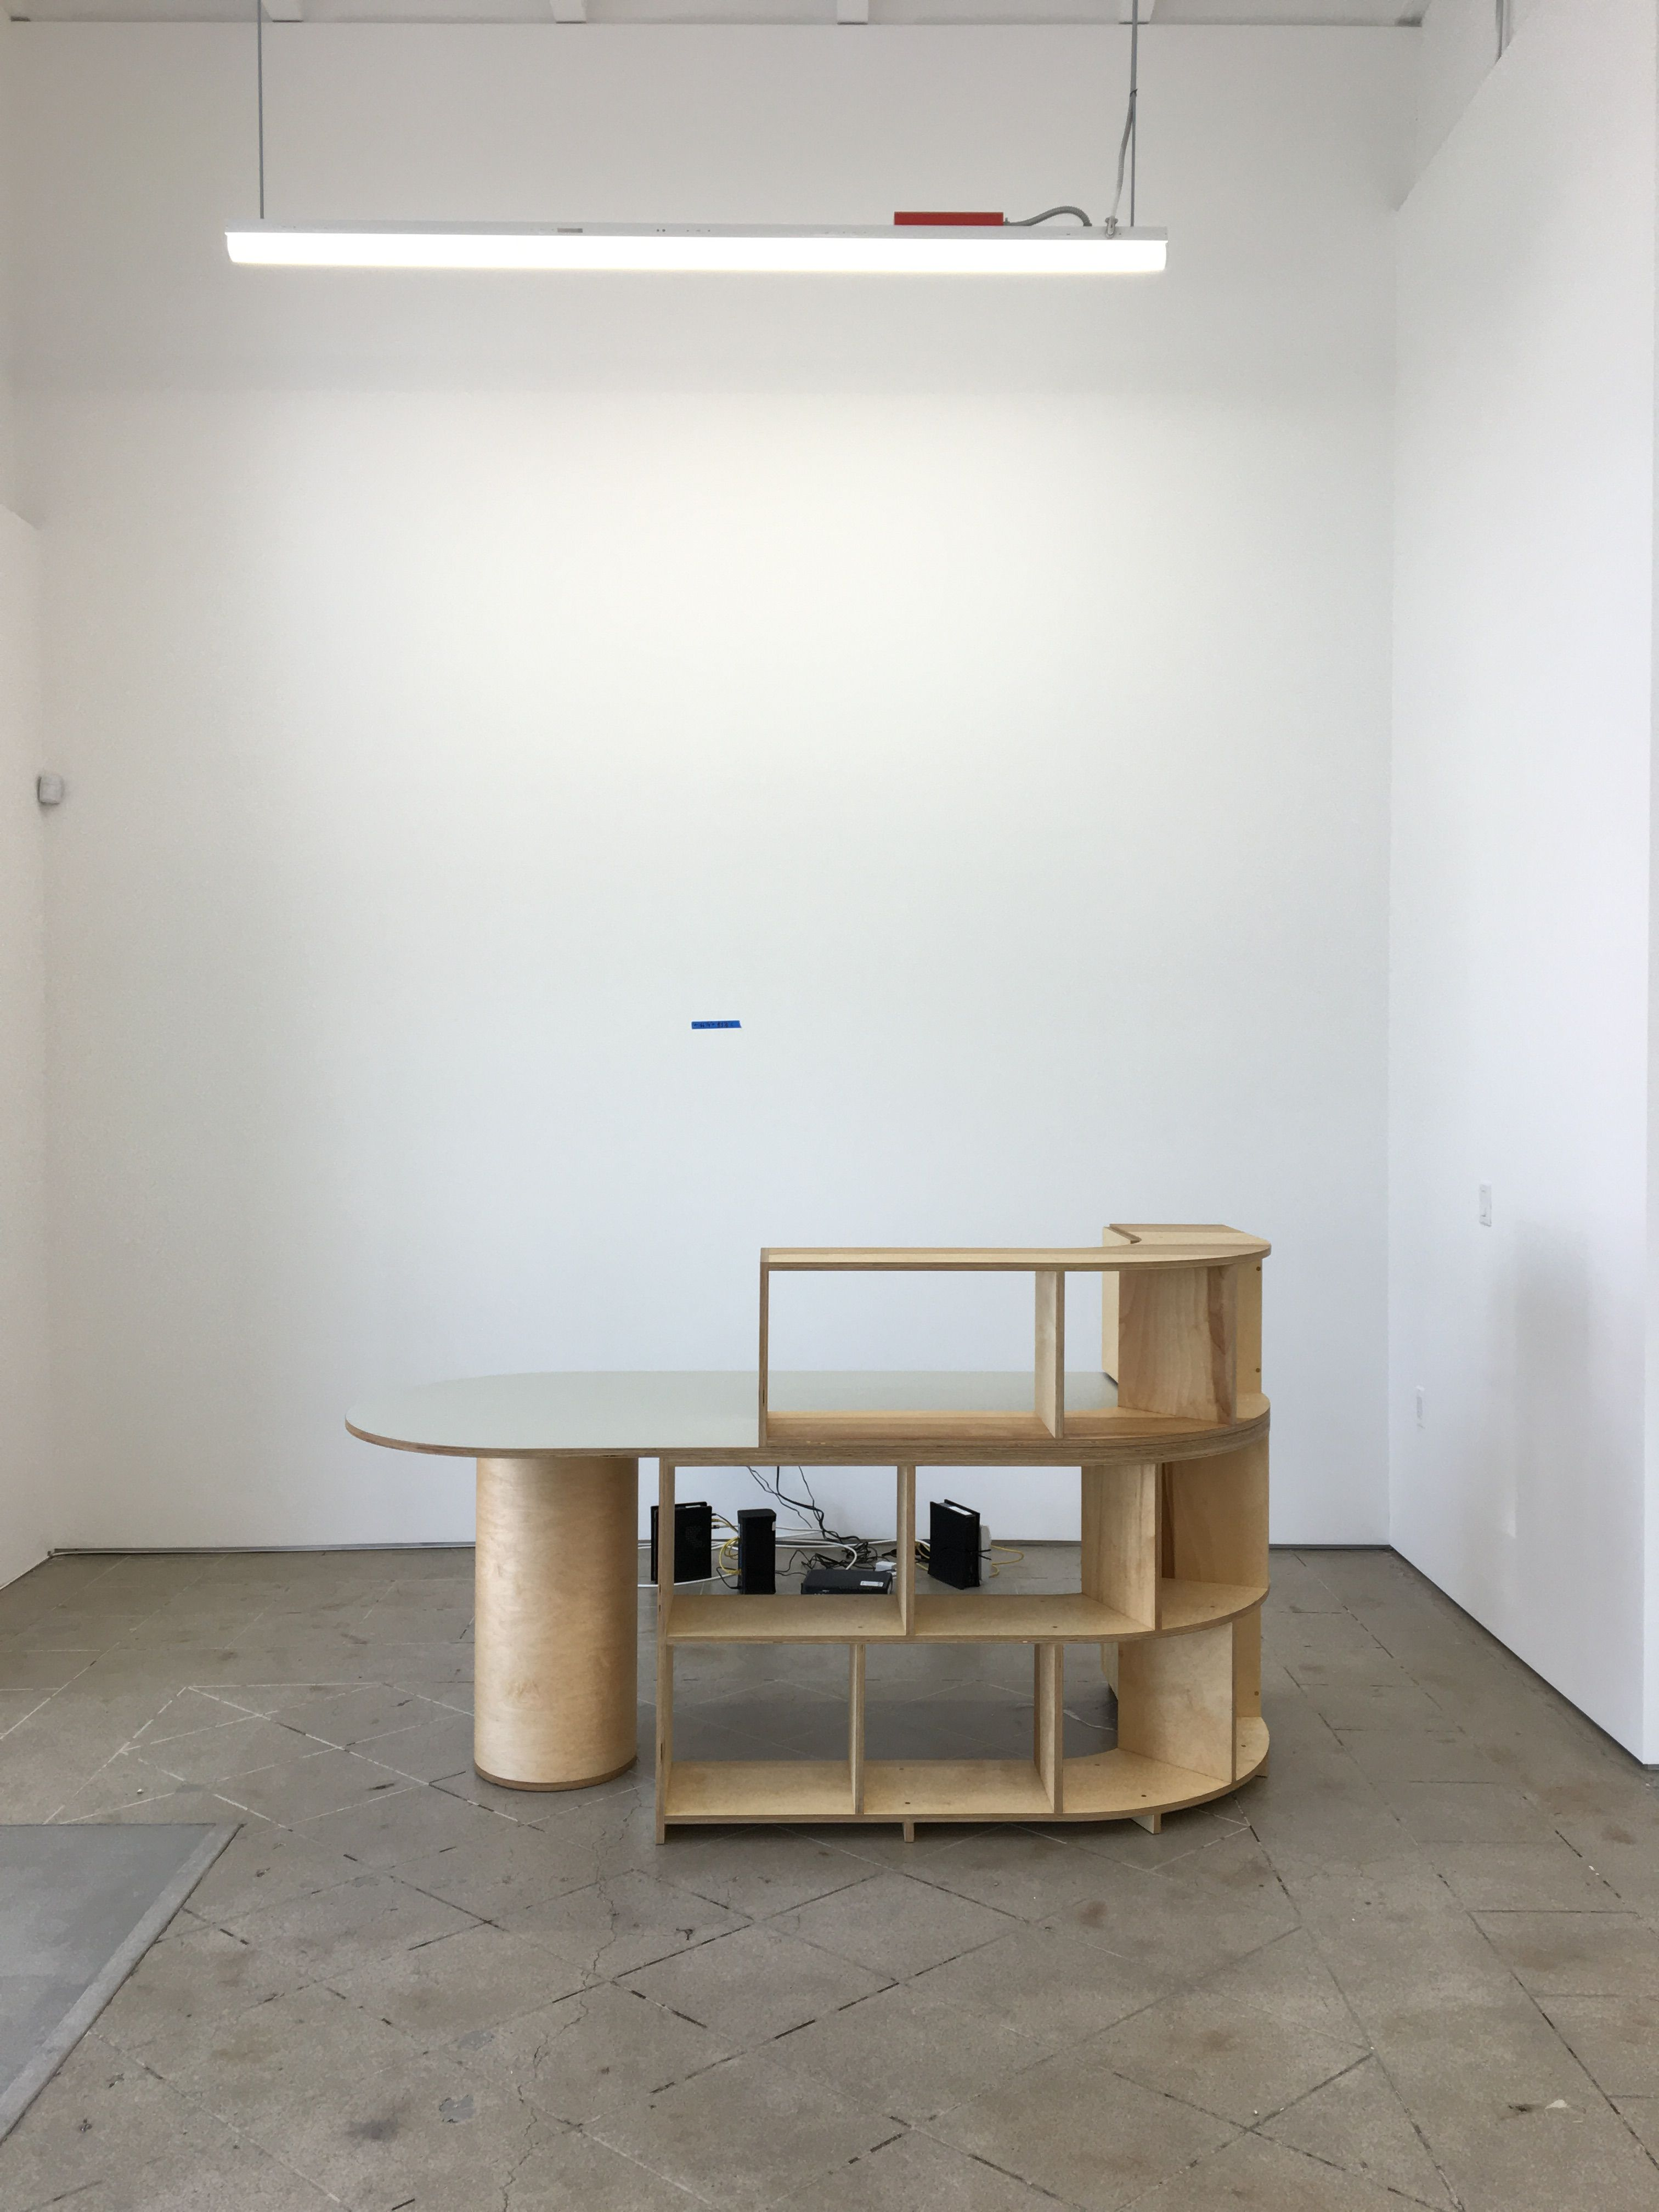 Executive Desk - Matthew Brown Gallery product image 9